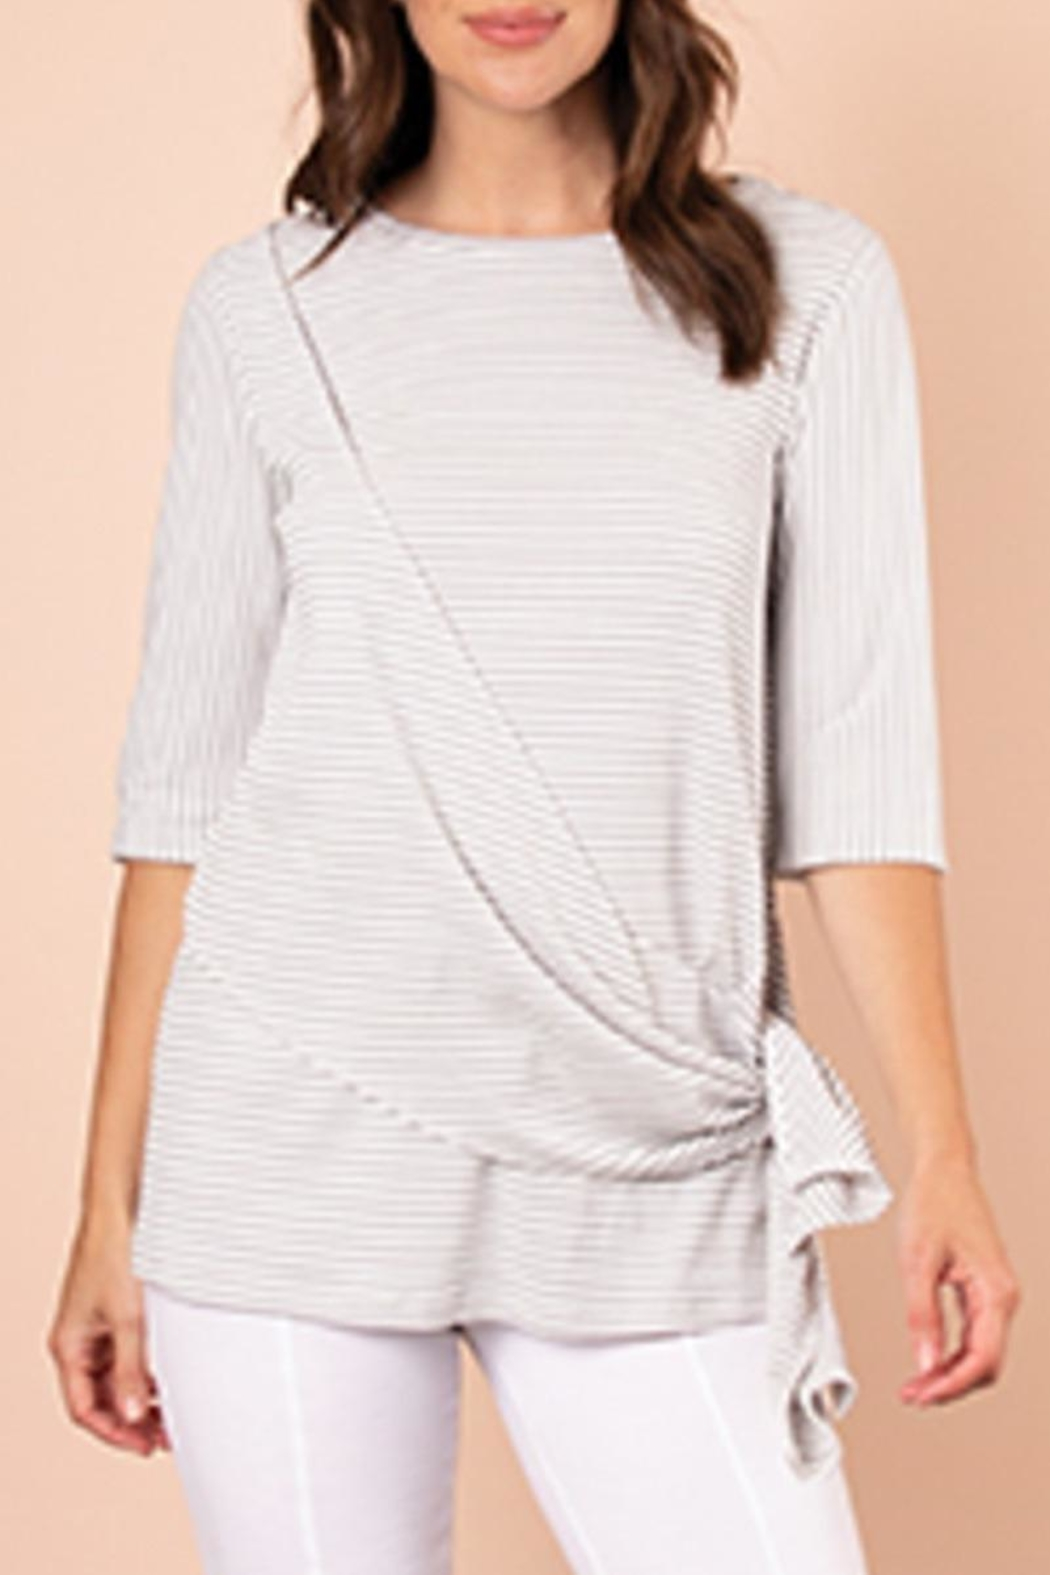 Simply Noelle Swept Away Top - Front Cropped Image